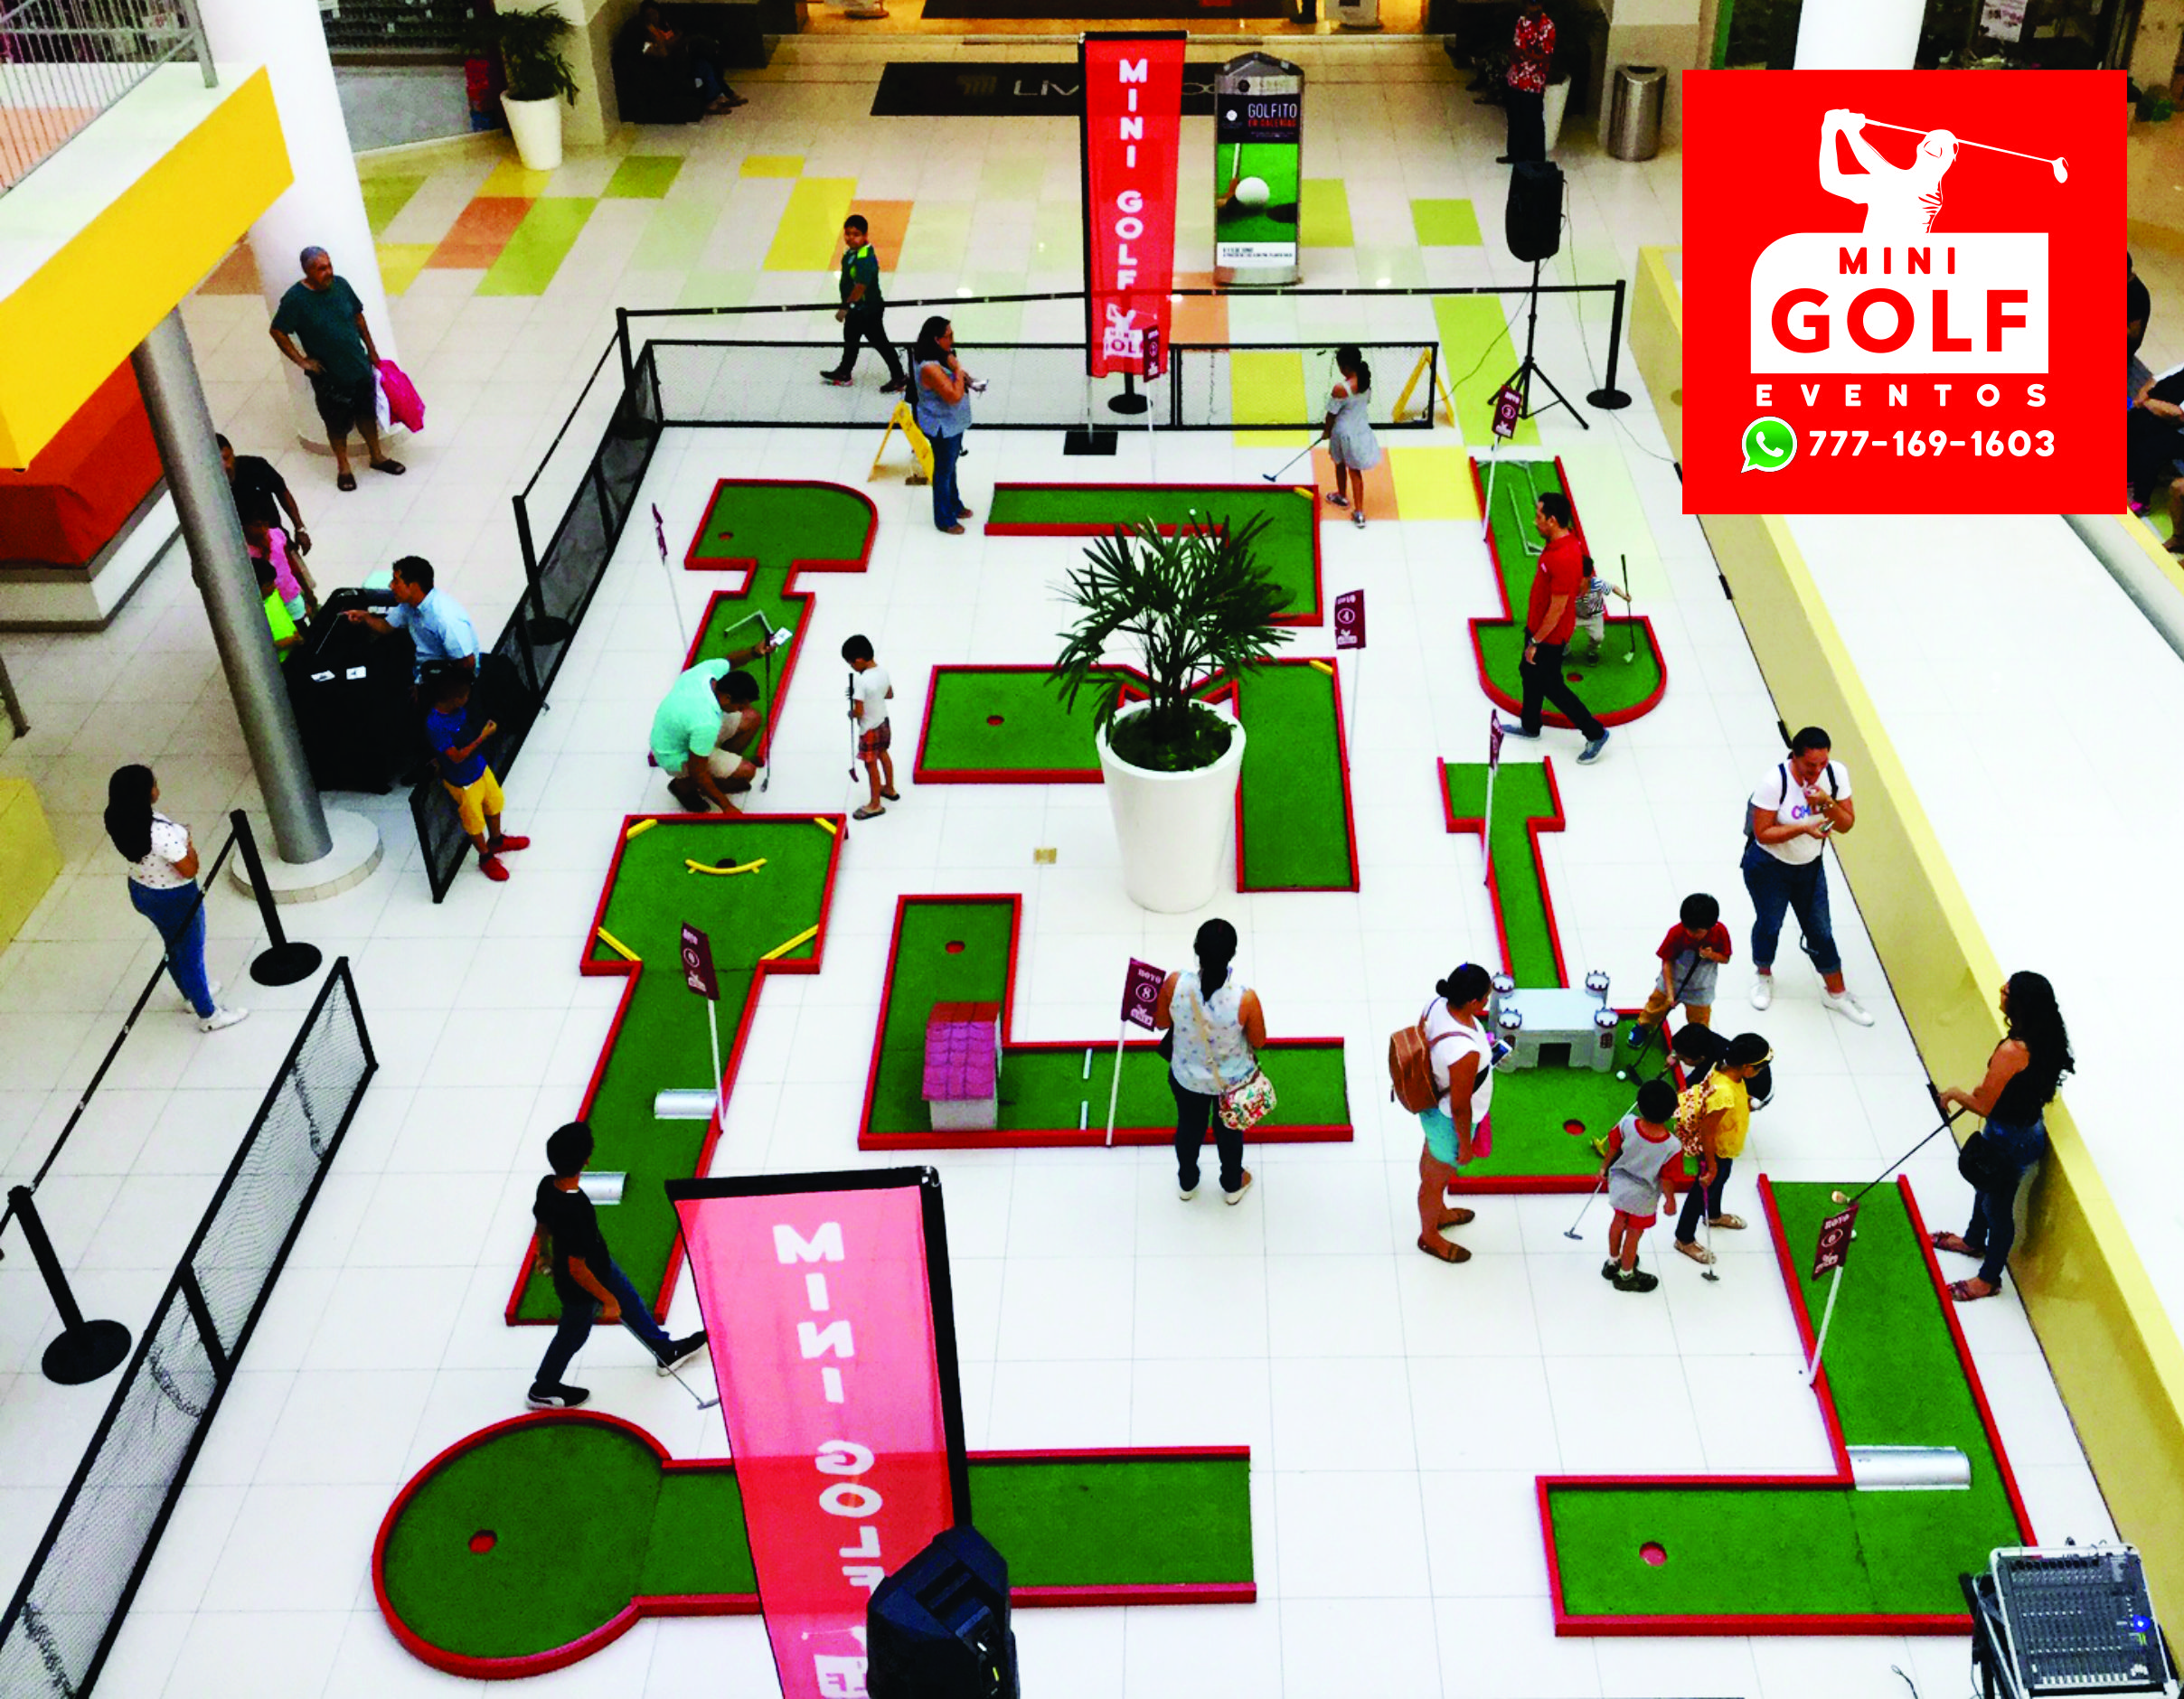 Mini Golf Golfito Mexico Eventos Portatil